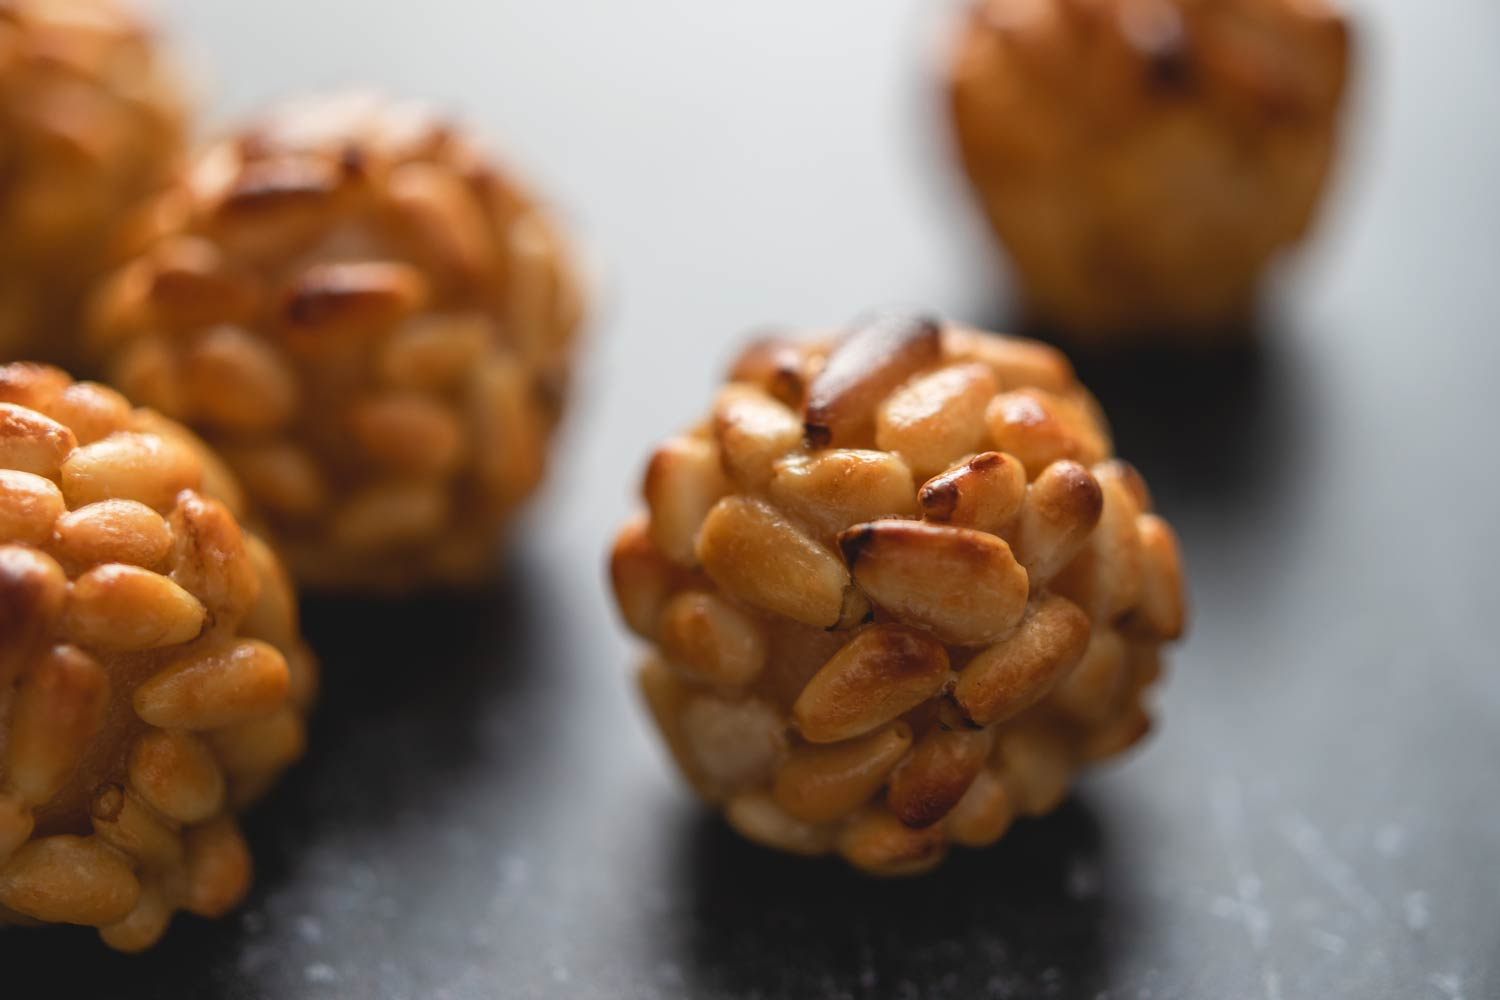 panellets: catalan pine nut cookies